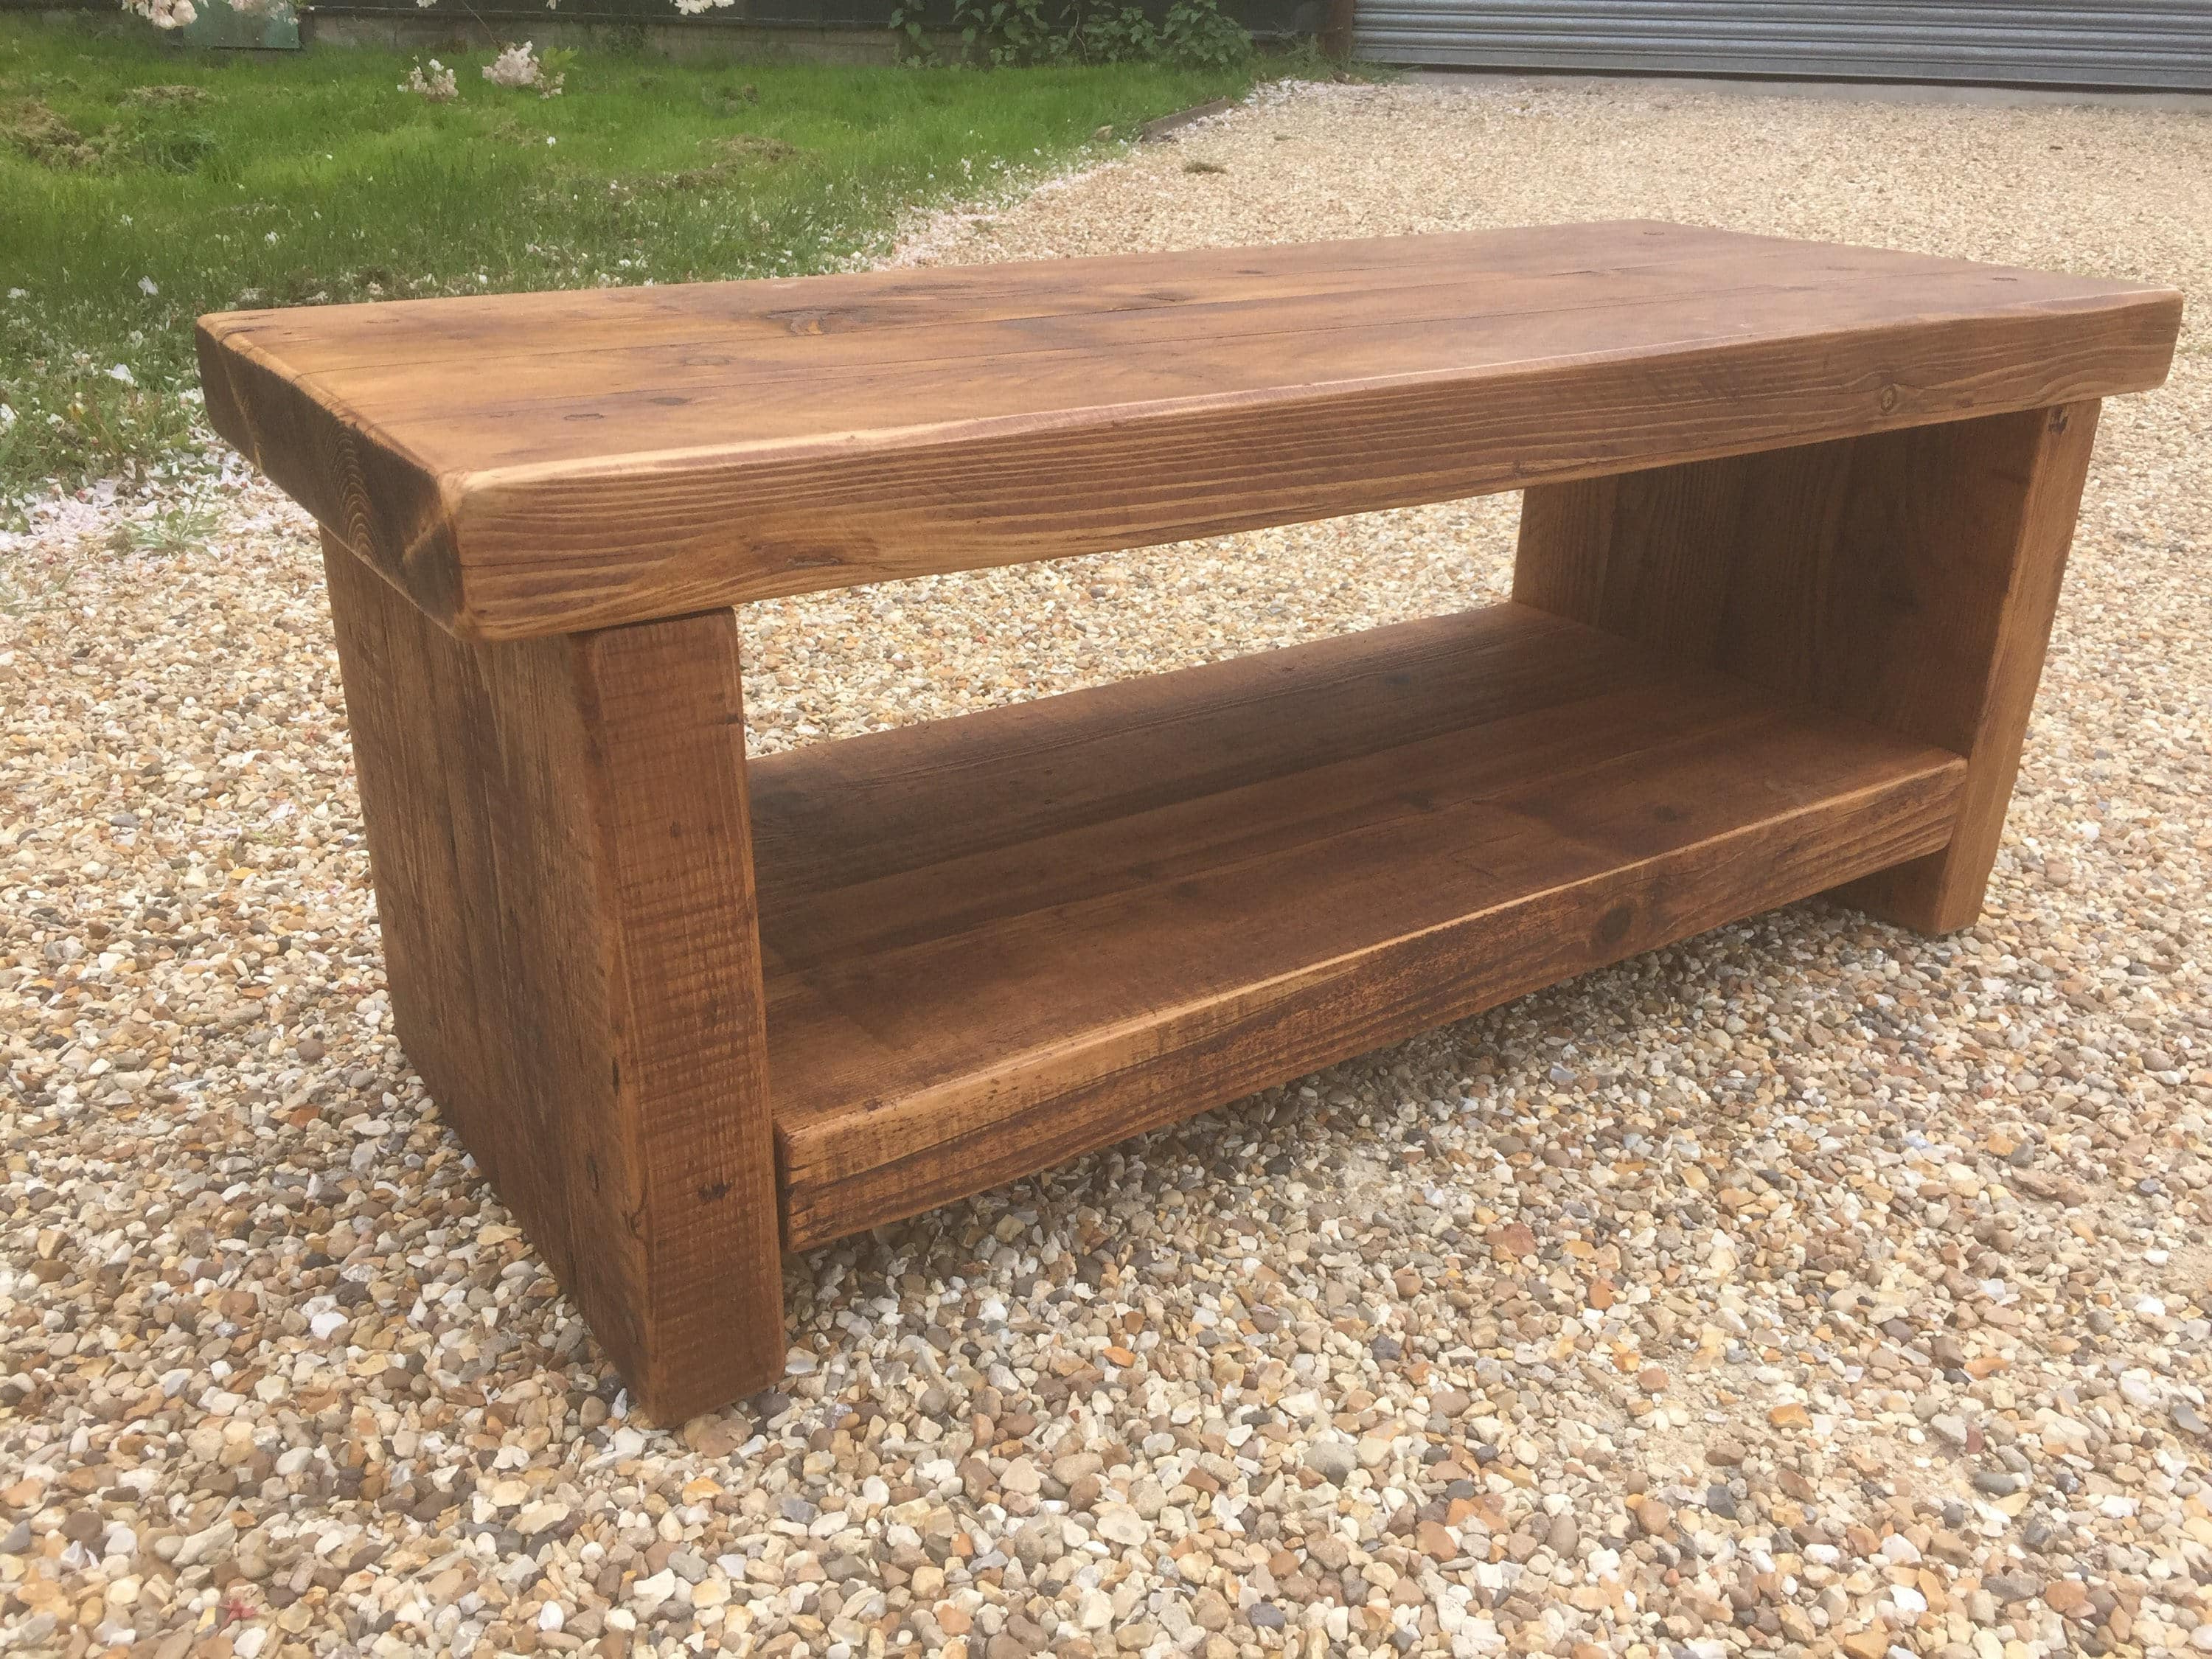 2017 Surprising Pine Tv Stands And Cabinets Vegas Los Slot Band Curiosity Pertaining To Pine Tv Cabinets (Gallery 7 of 20)